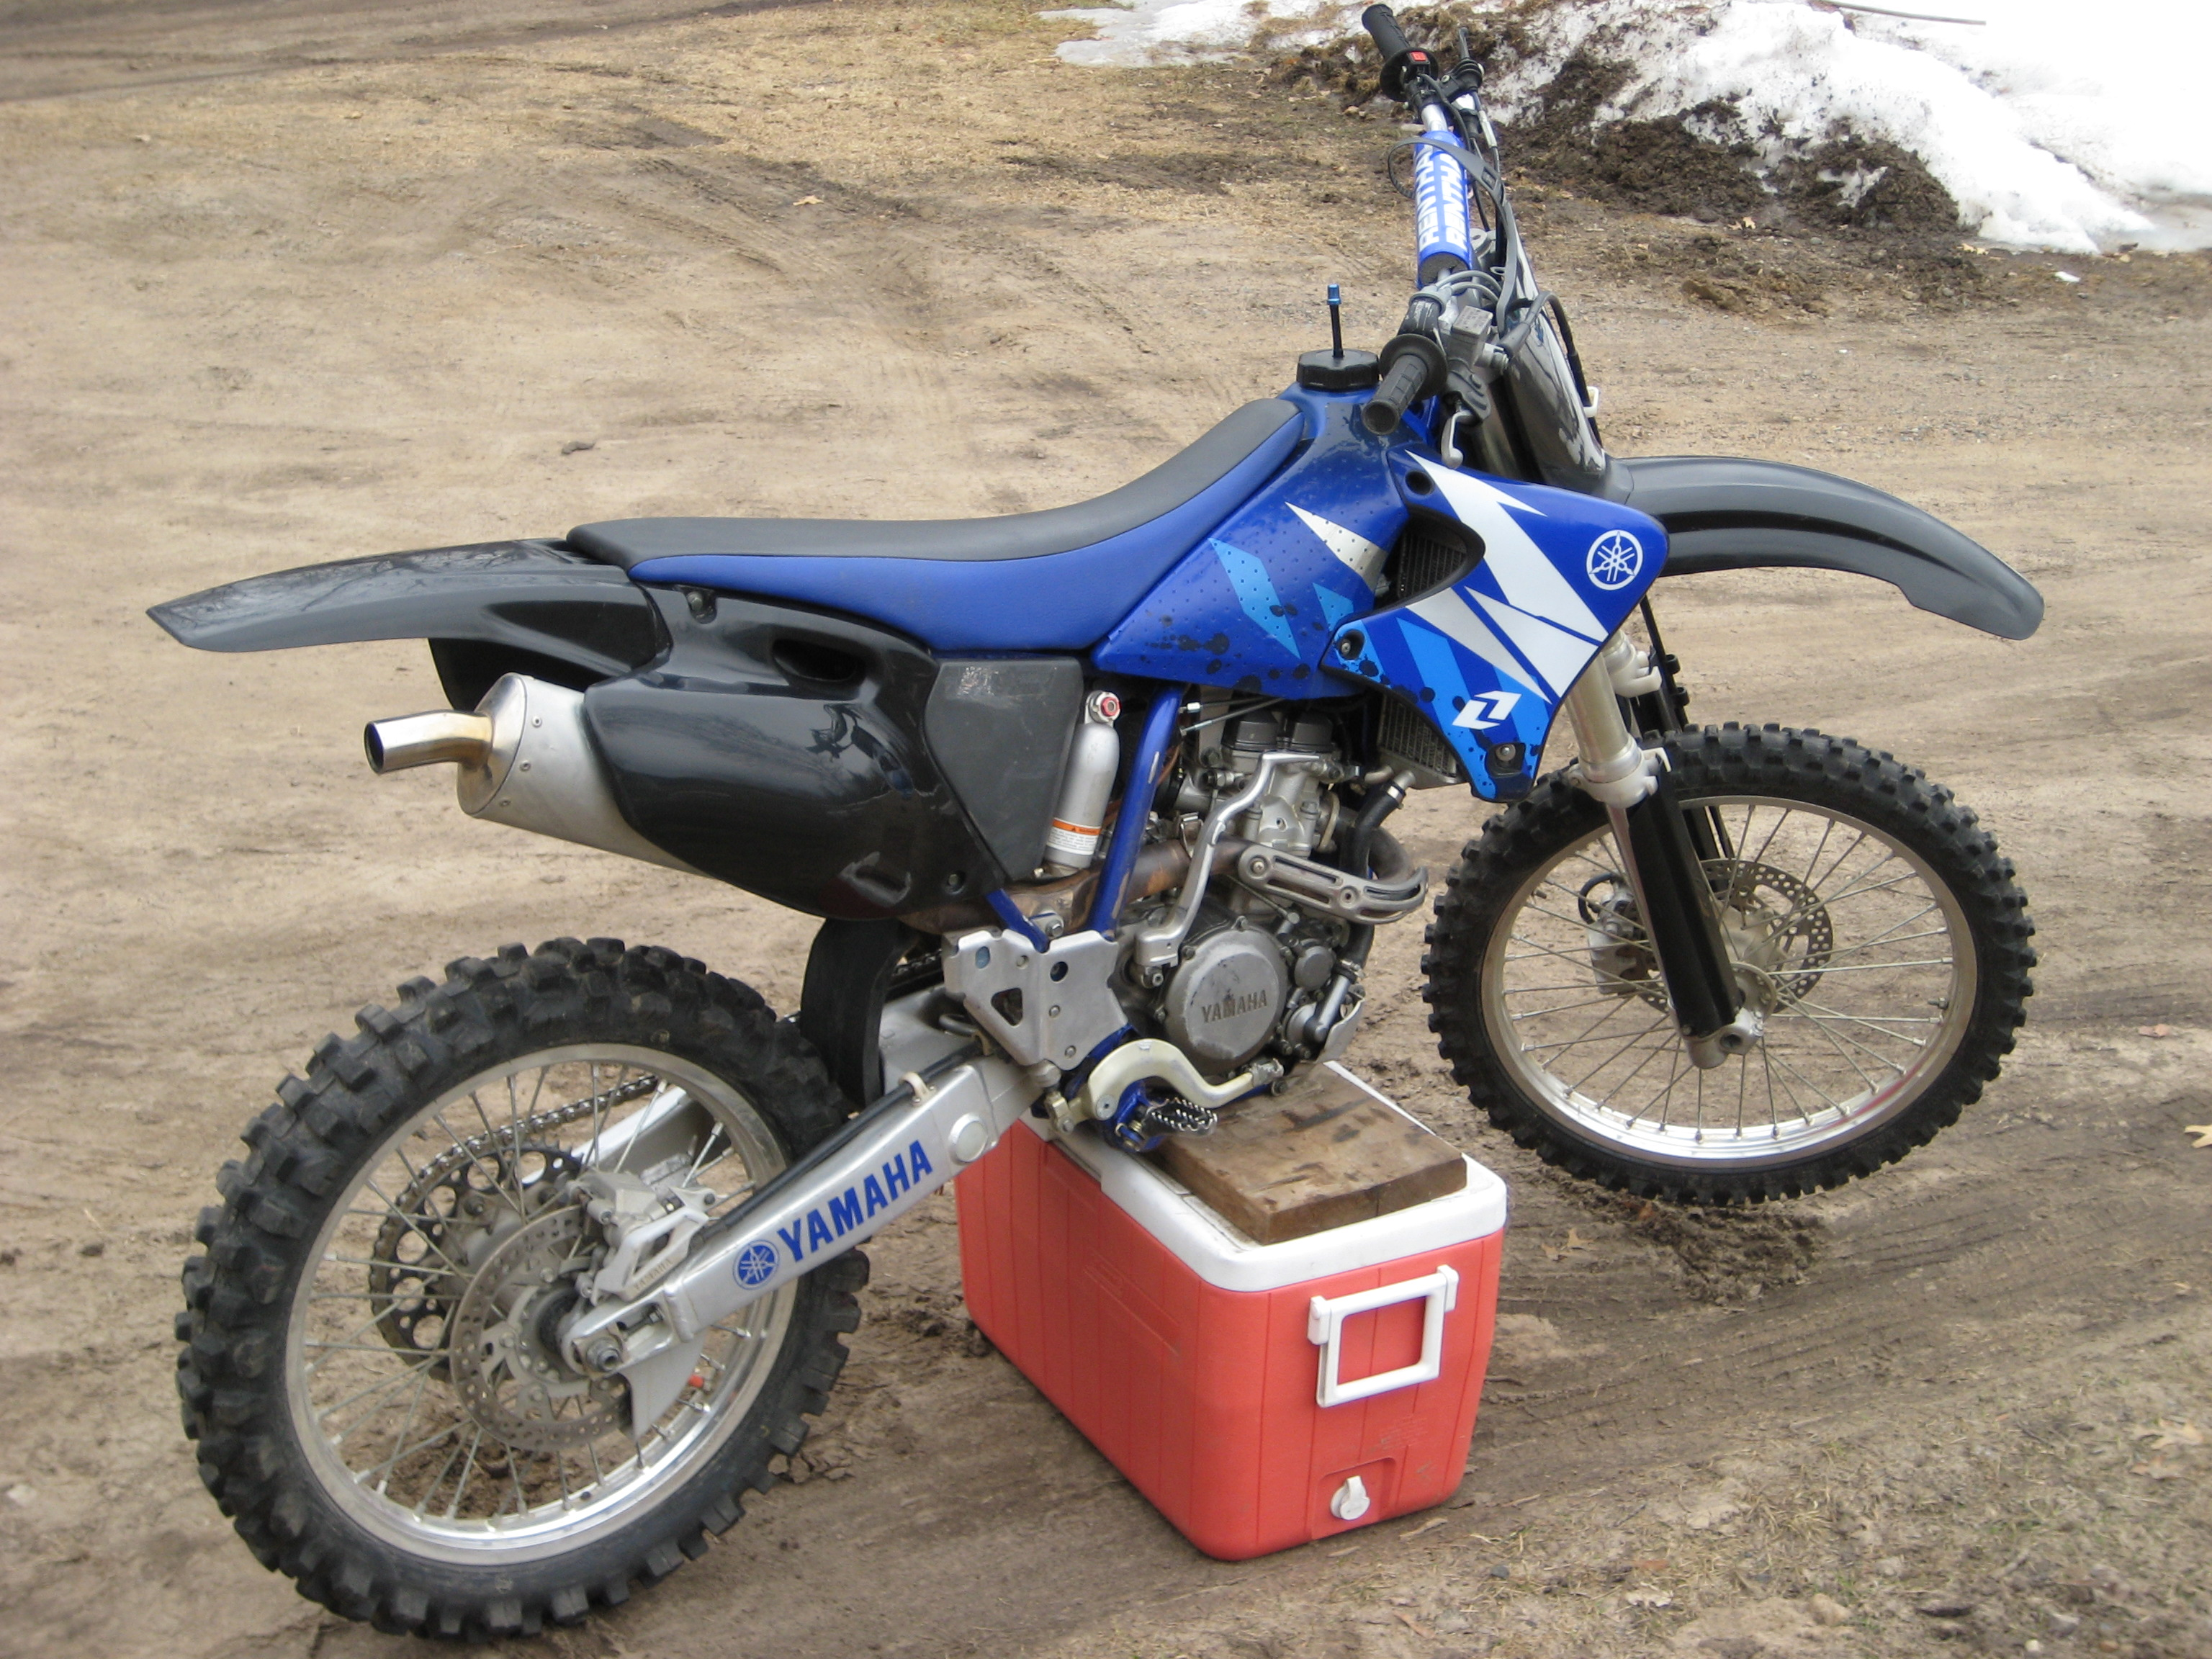 2001 yamaha yz 250 f pic 4. Black Bedroom Furniture Sets. Home Design Ideas